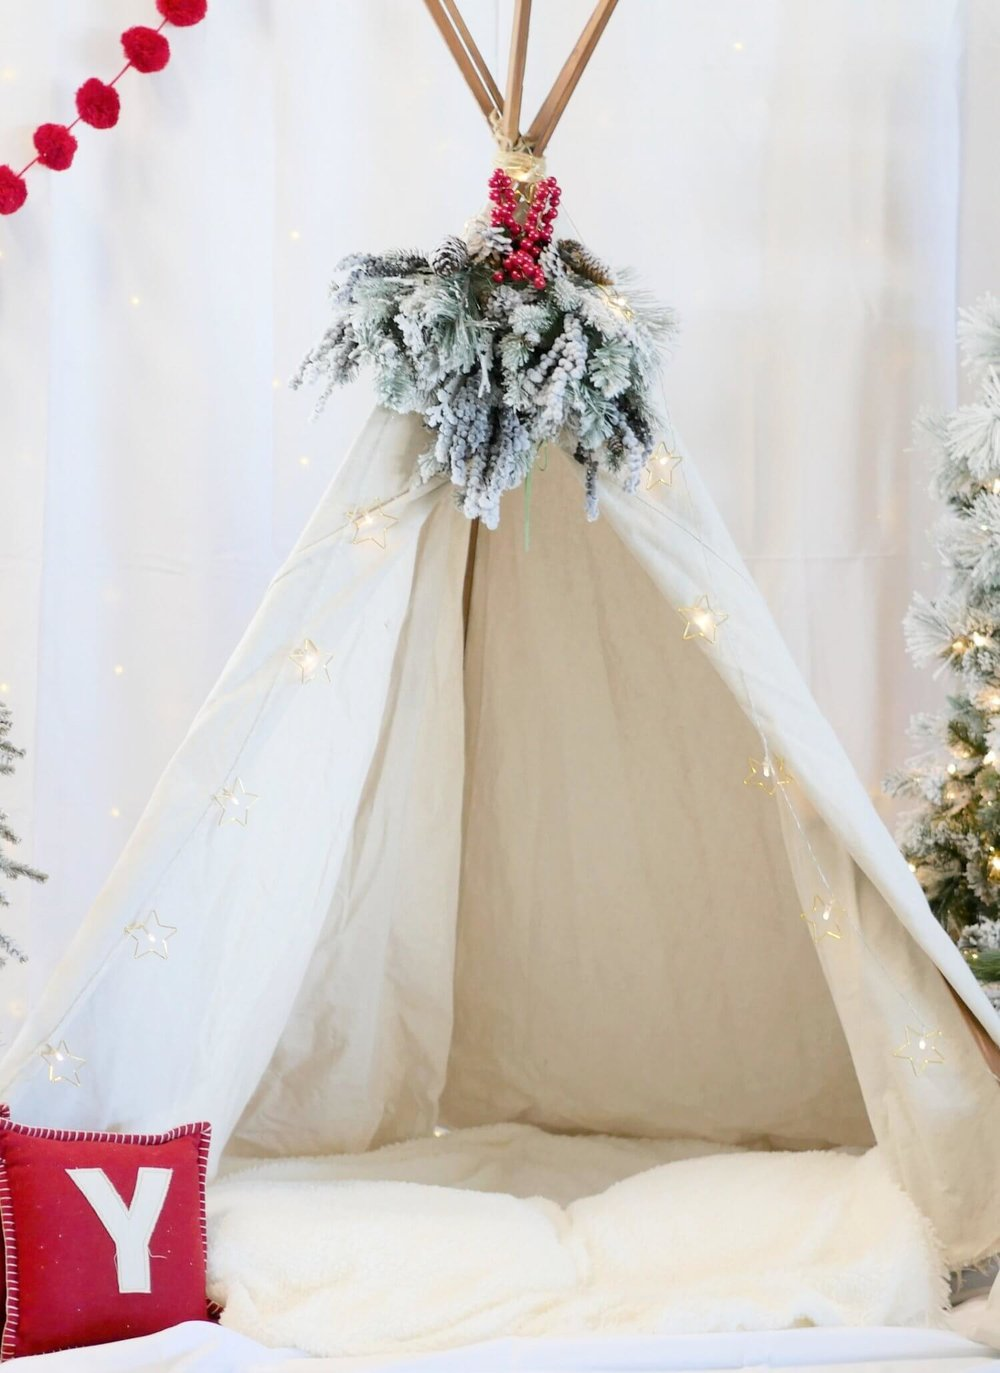 Teepee for a christmas holiday photo booth,  great idea!